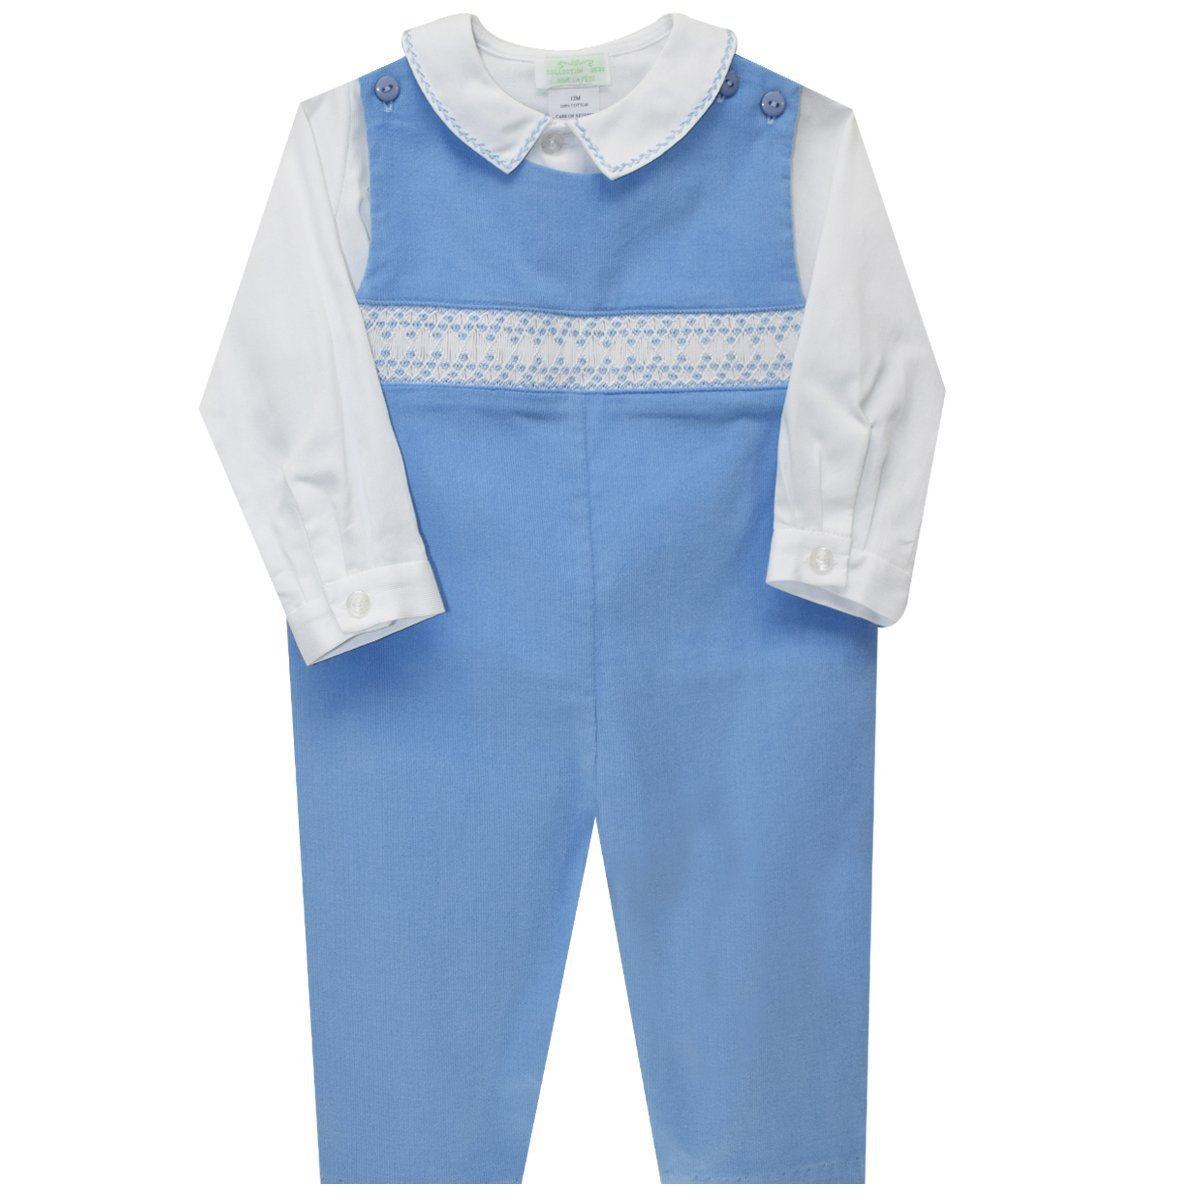 COLLECTION BEBE Andy Geometric Smocked Boys Overall and Shirt Vive La Fete